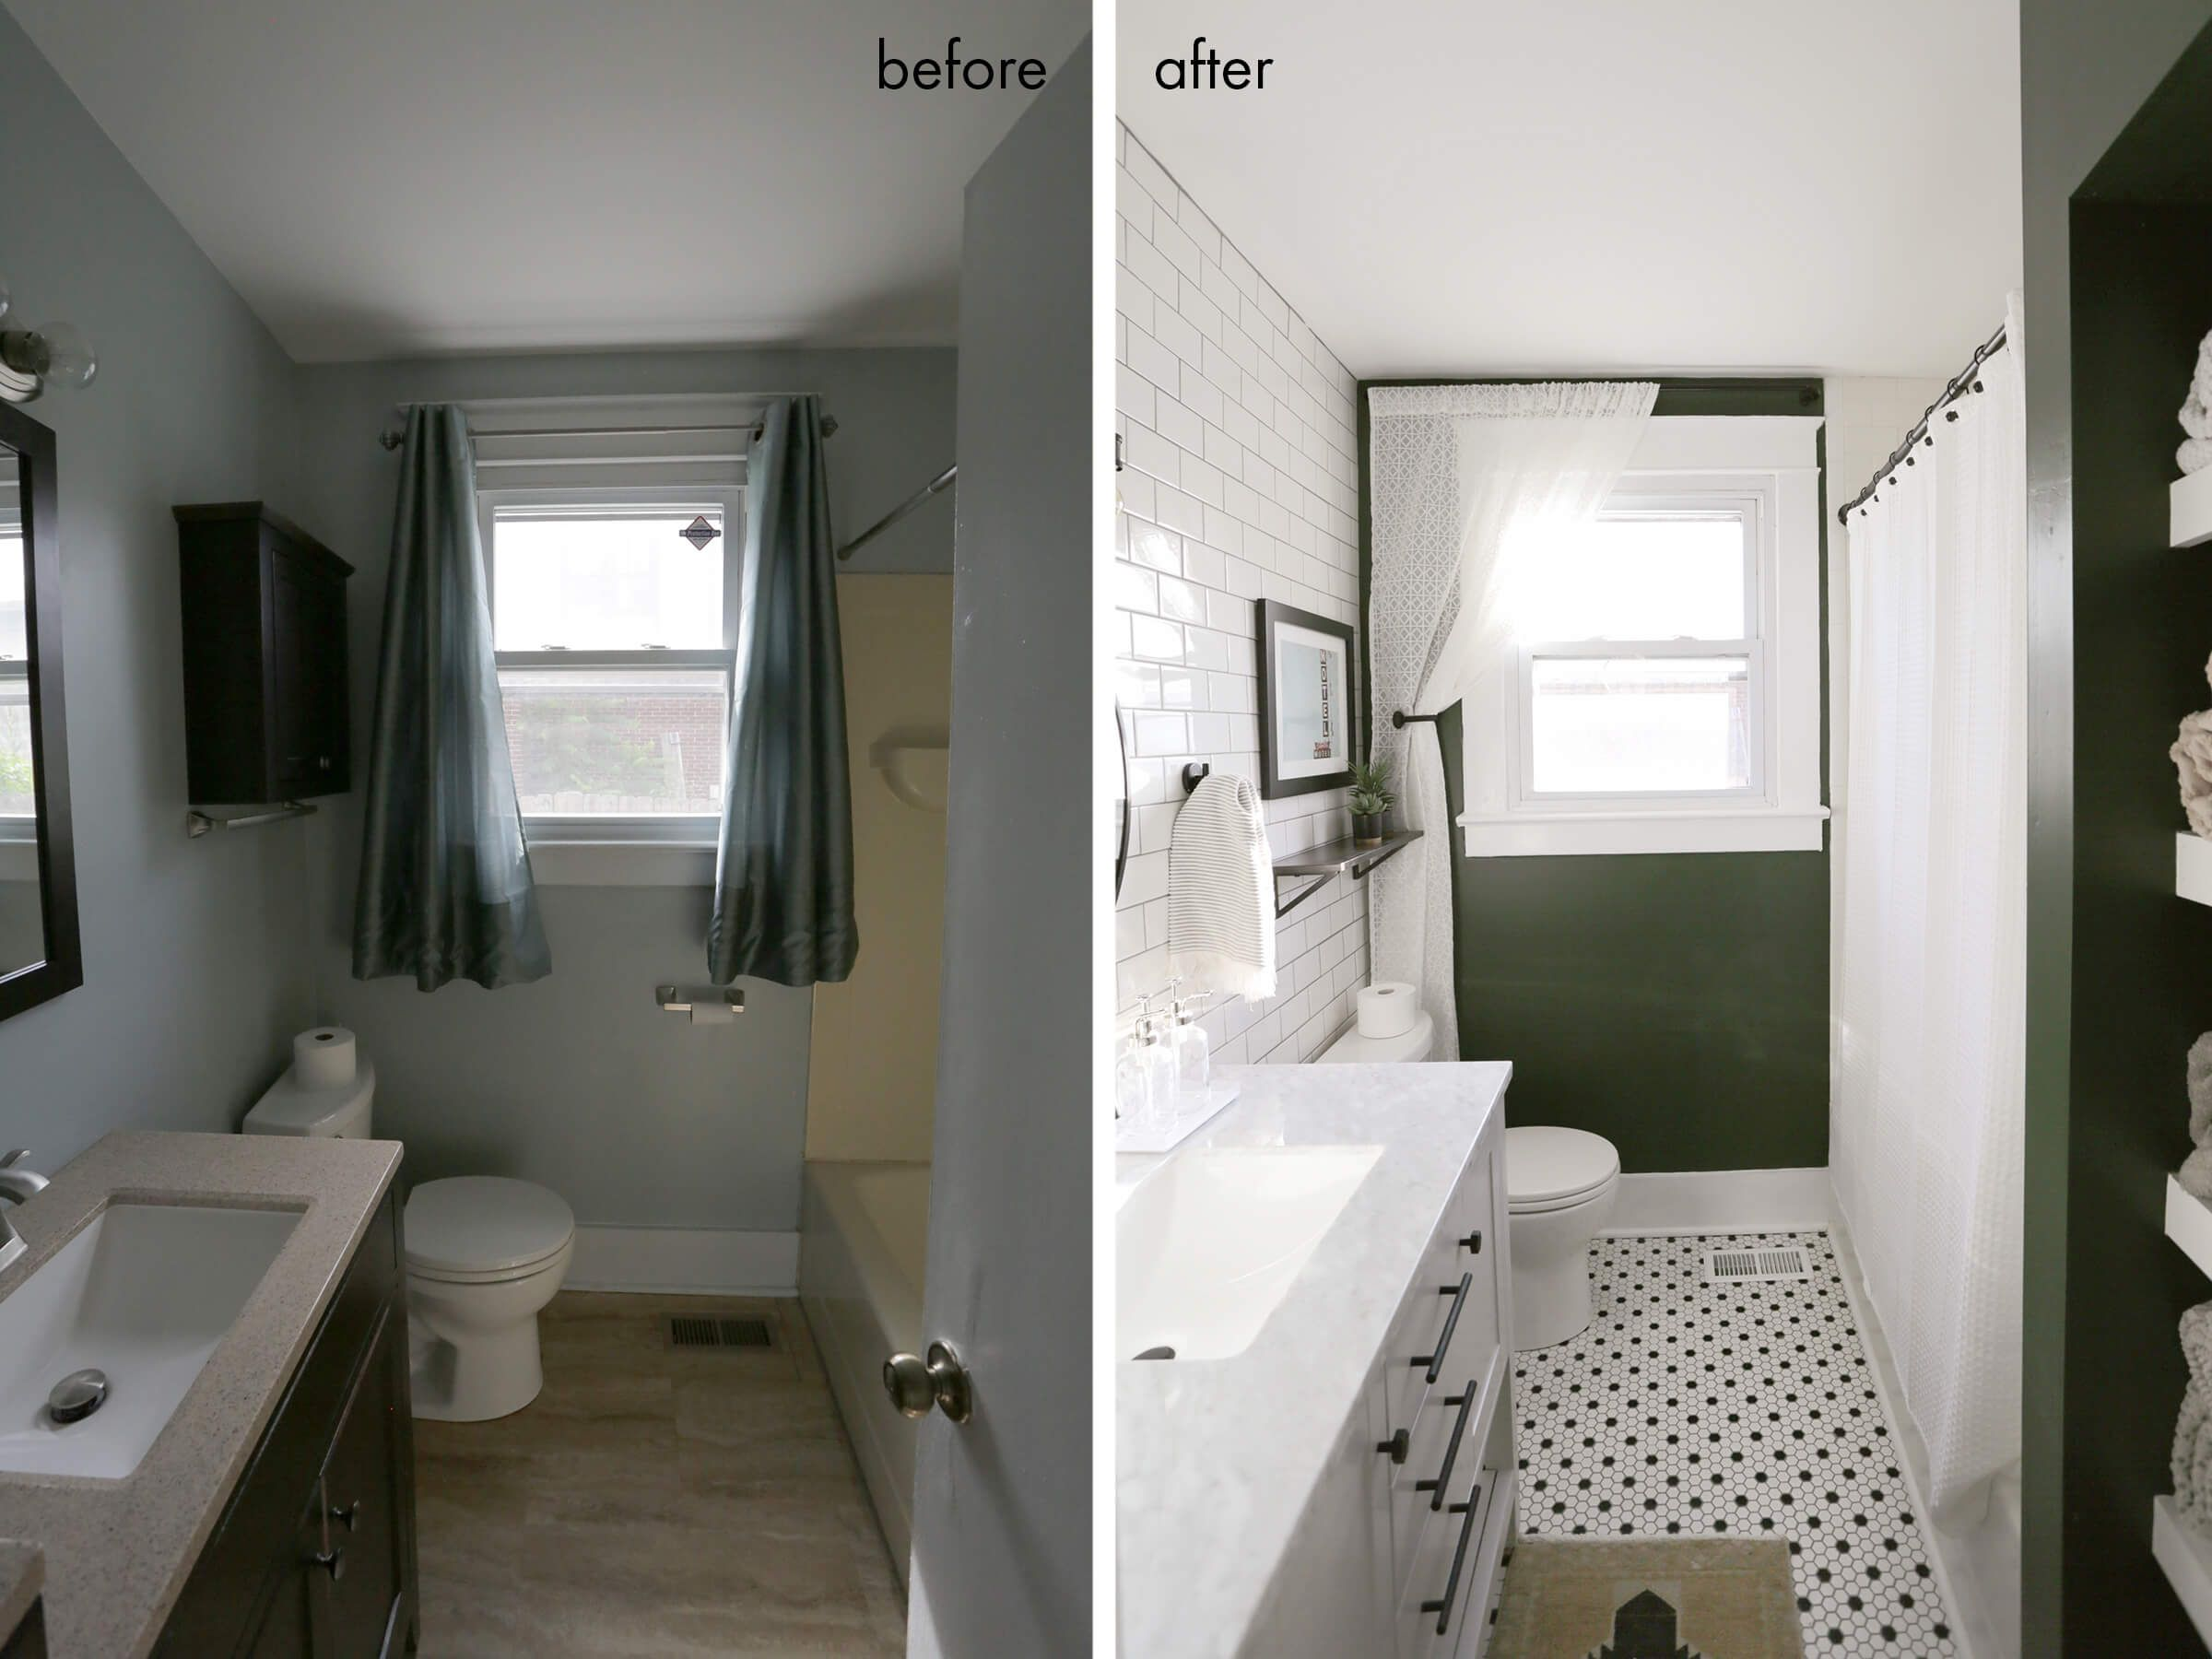 Elsiesnashvillebnb Bathroom Tour Before After With Images